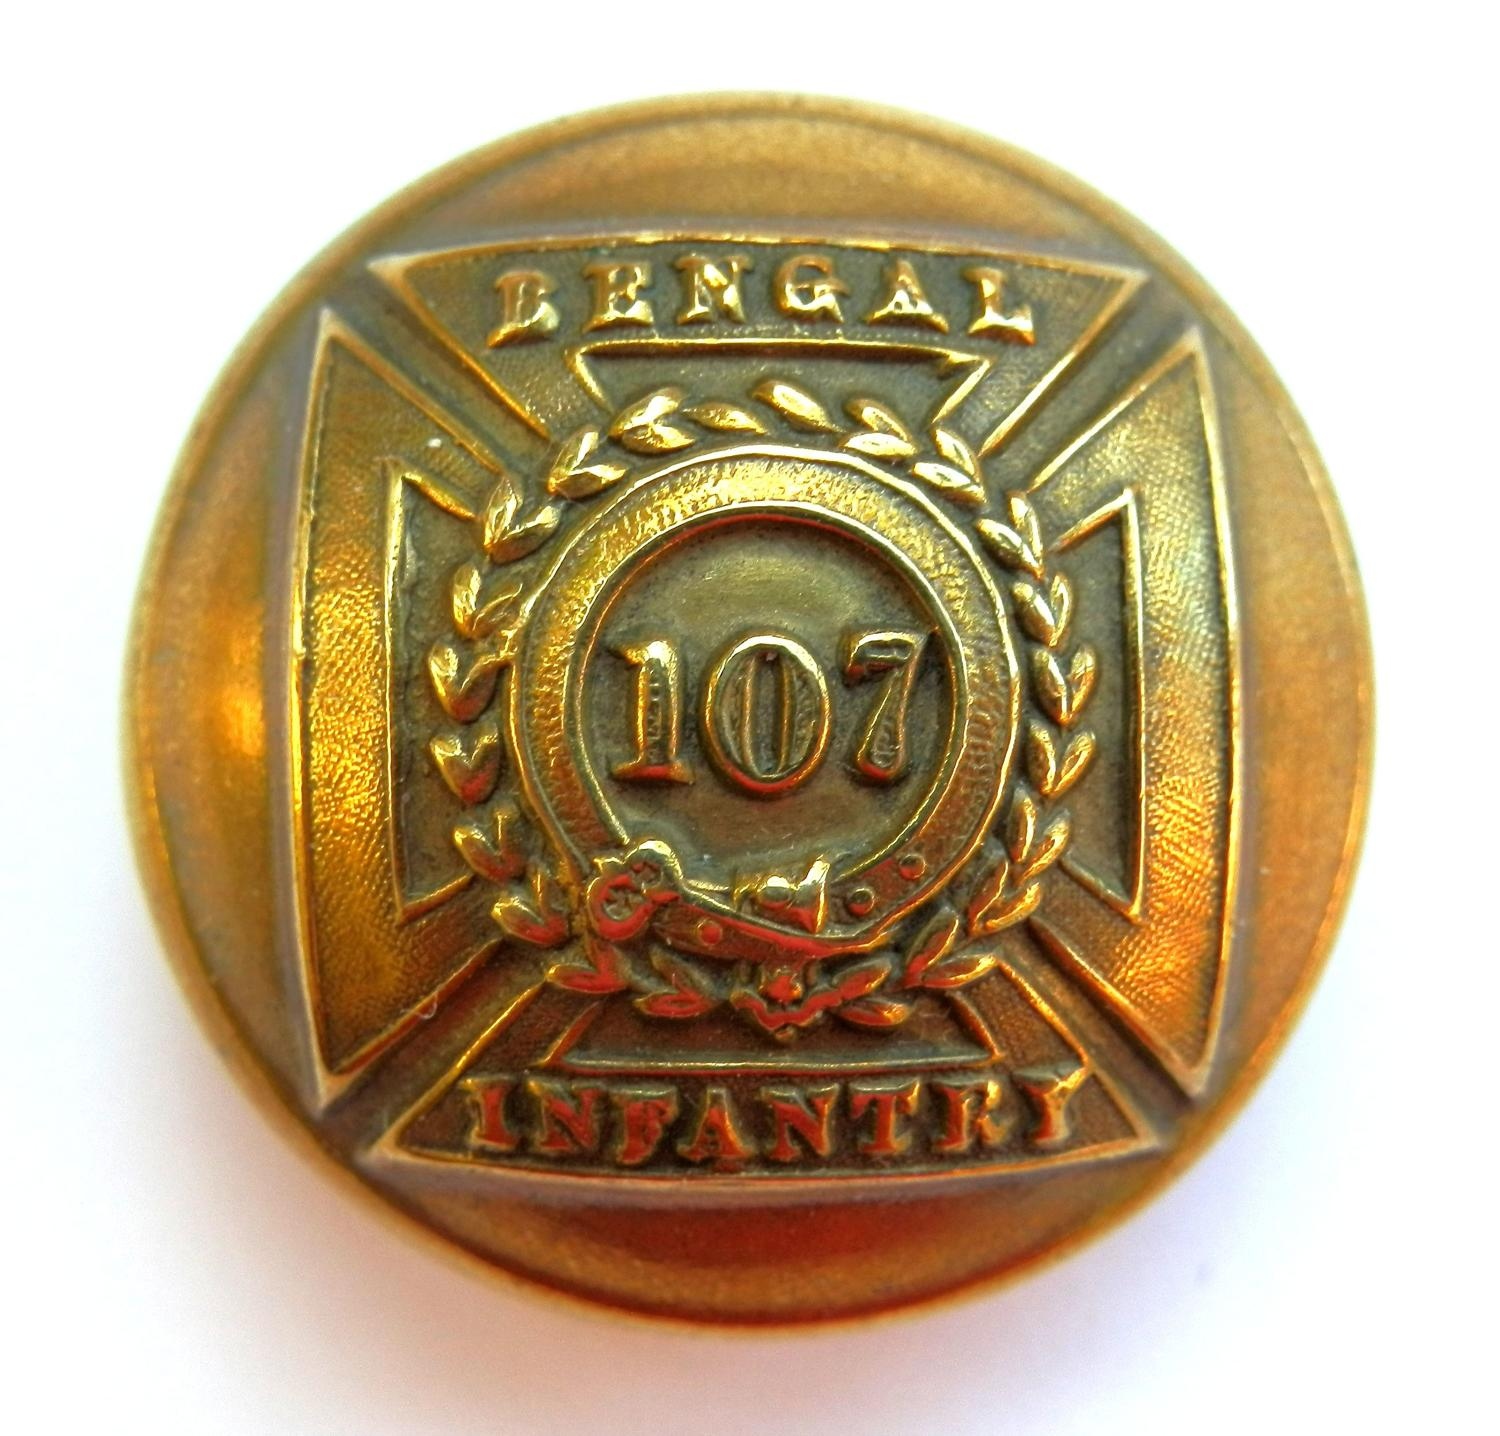 107th (Bengal Infantry) Regiment of Foot.